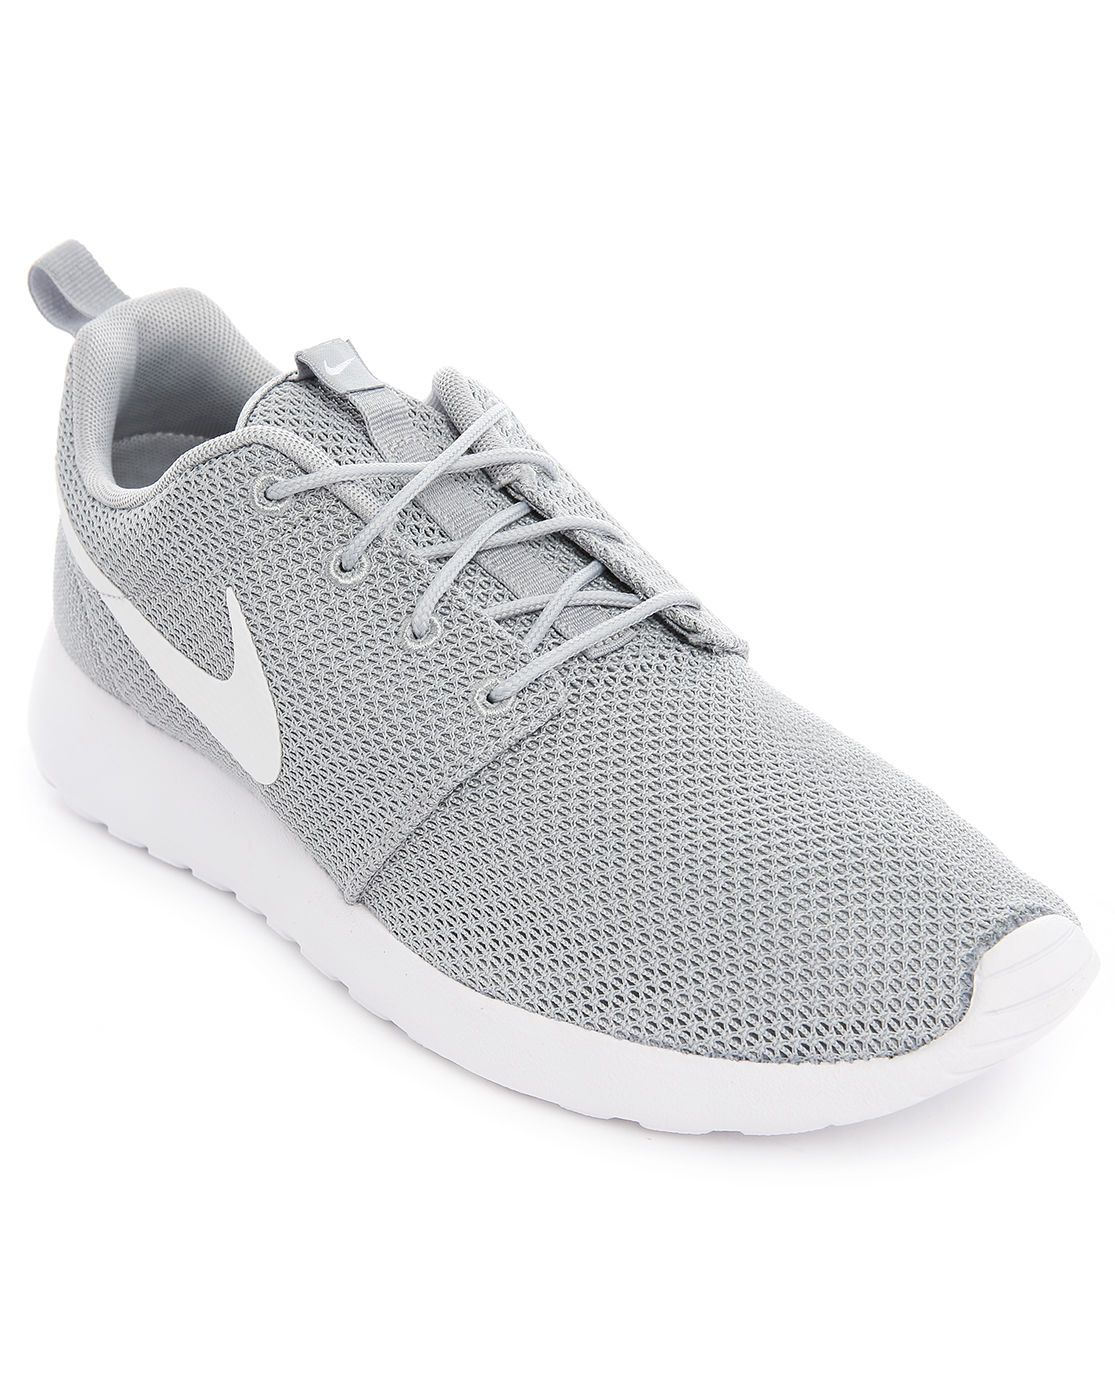 detailed look 7a8c2 5a6e5 get nike roshe run grey mesh sneakers in gray for men grey 30f4c e61fa